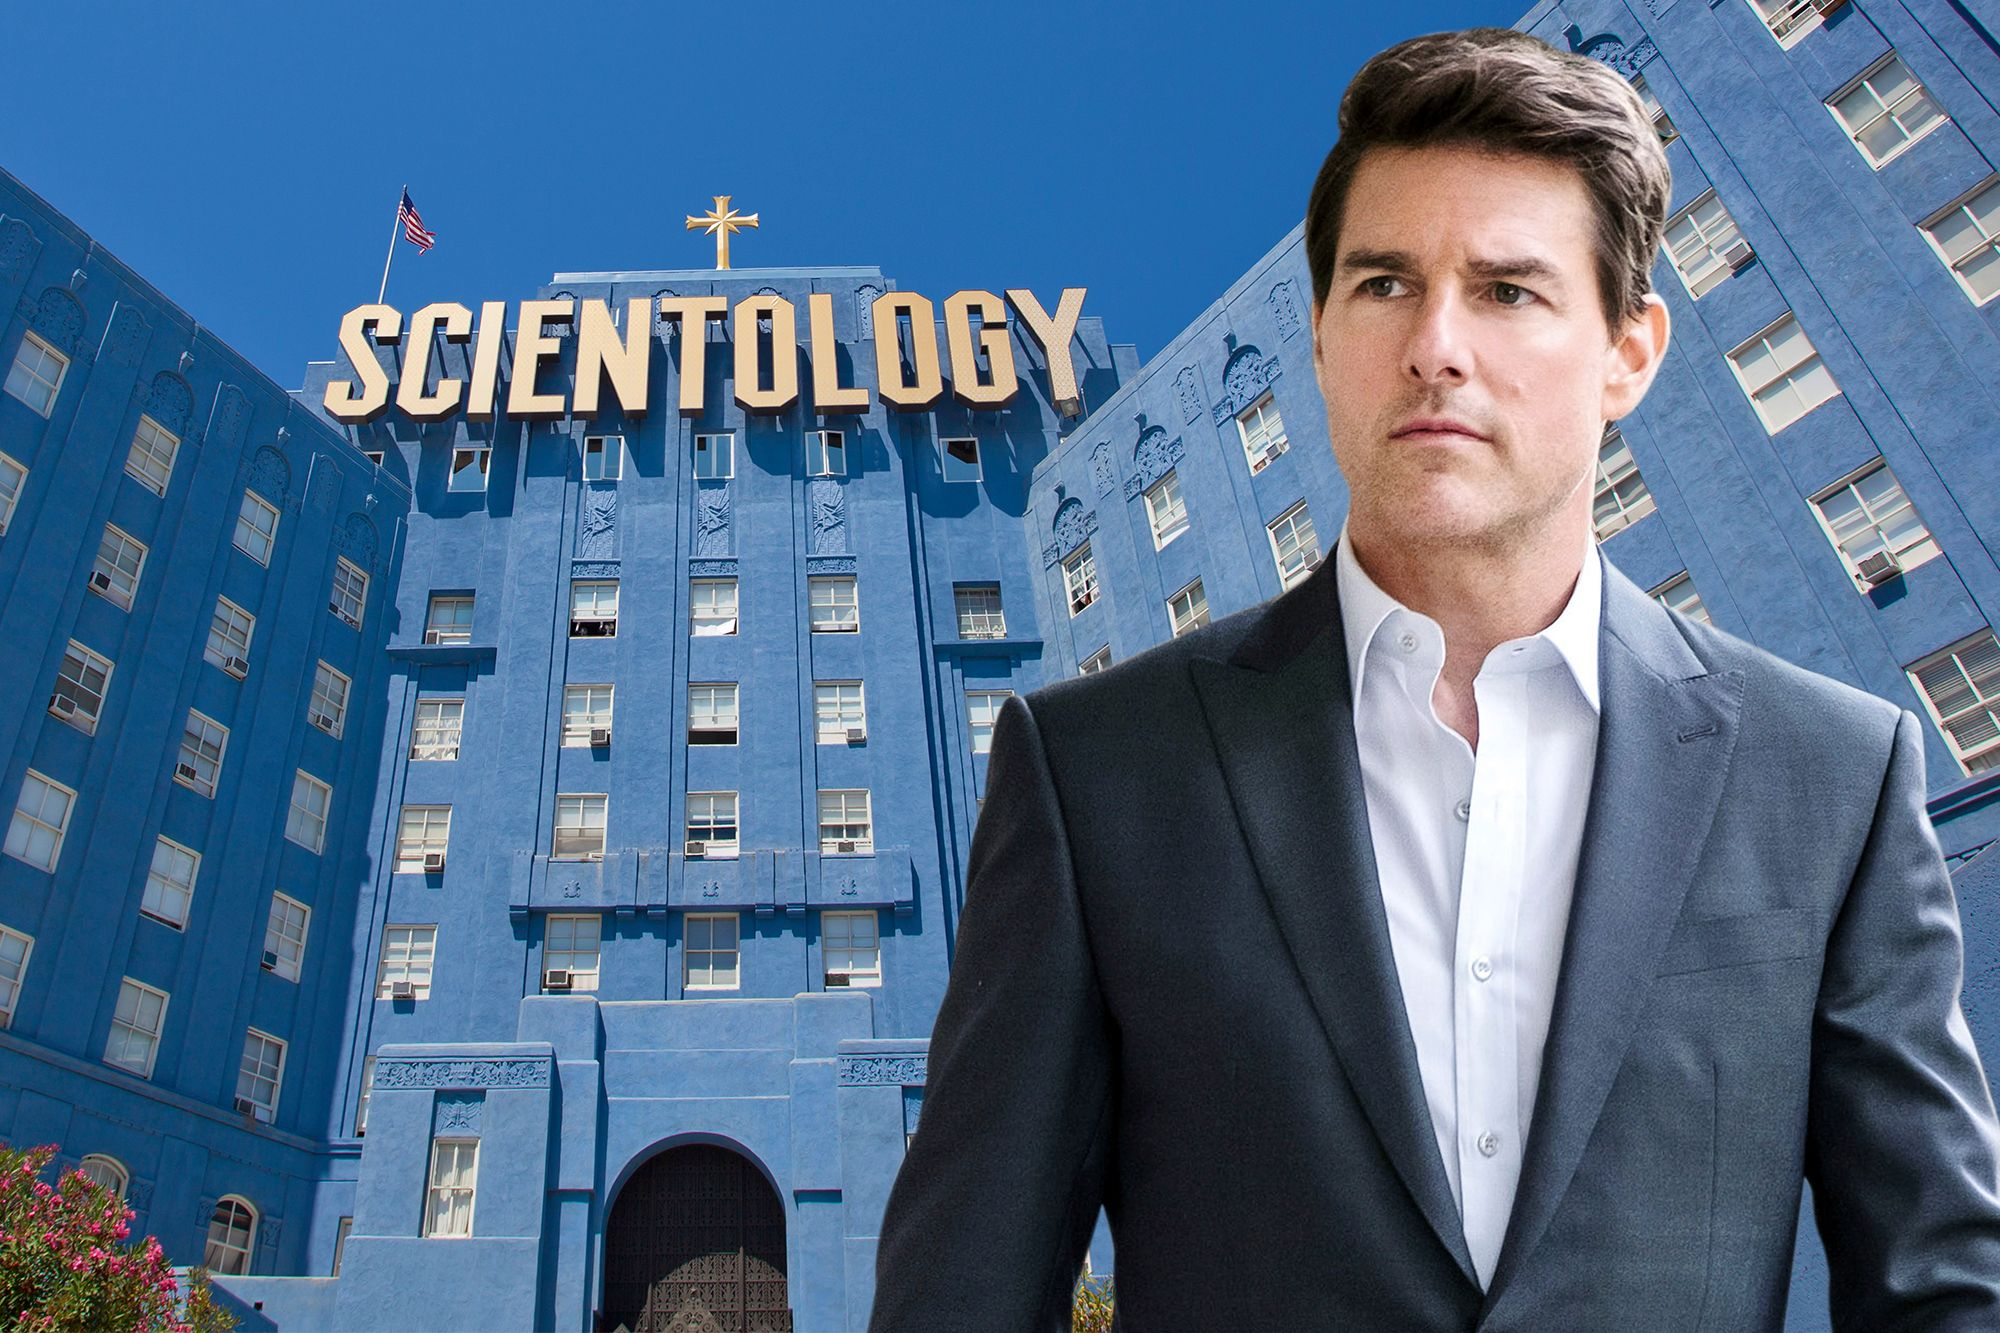 How come no one asks Tom Cruise about Scientology?